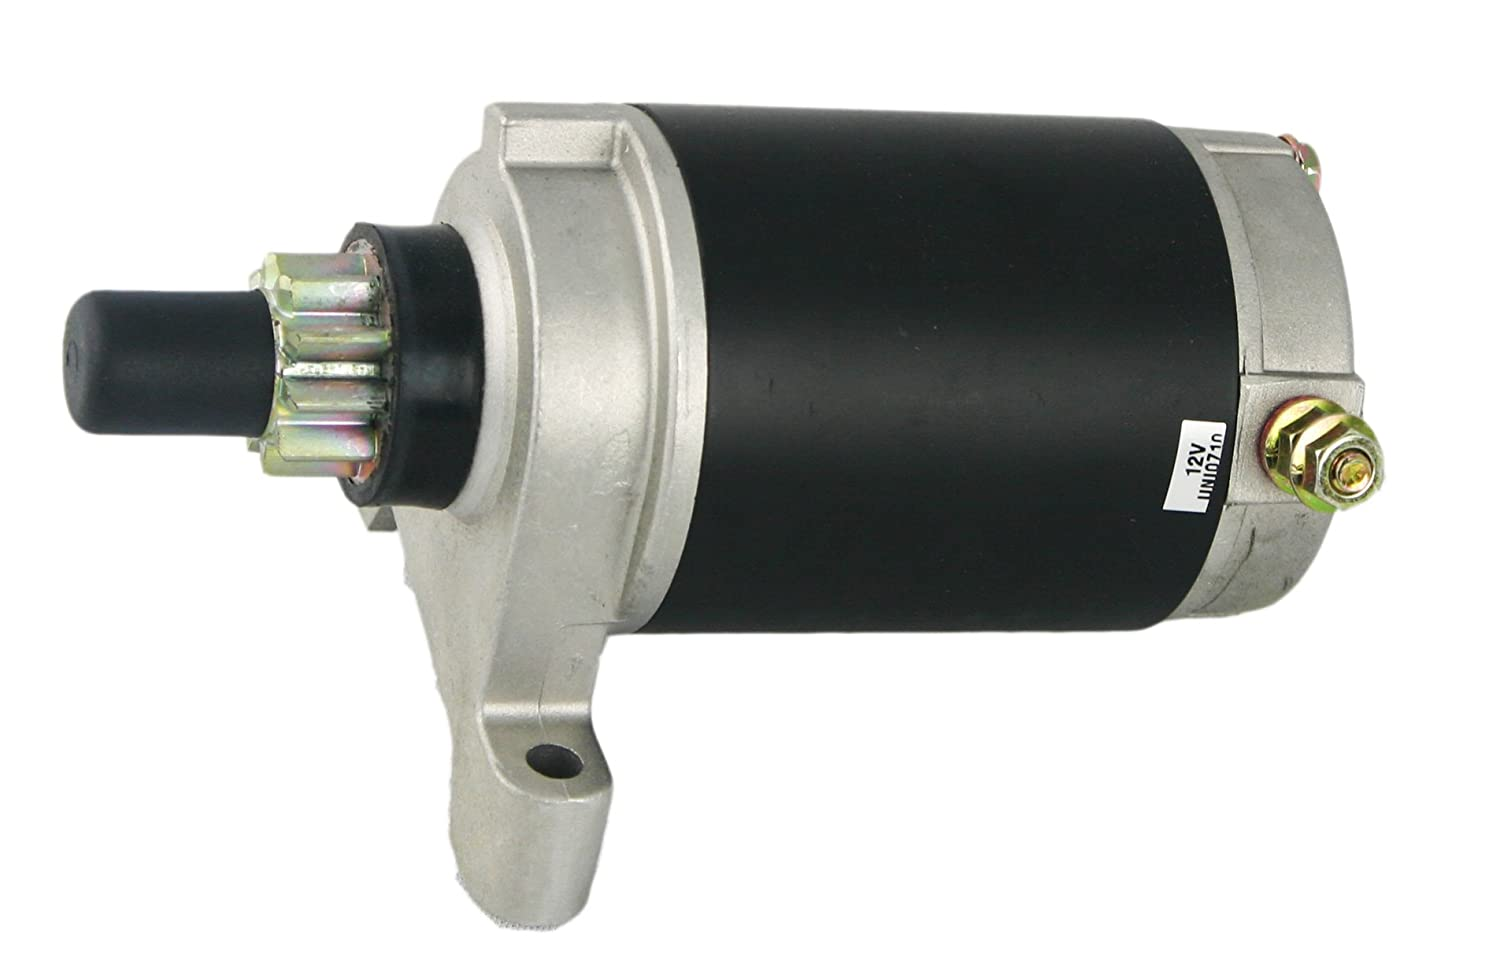 Oregon 33-713 Electric Starter Motor Tecumseh Part Numbers 37425 and 36914